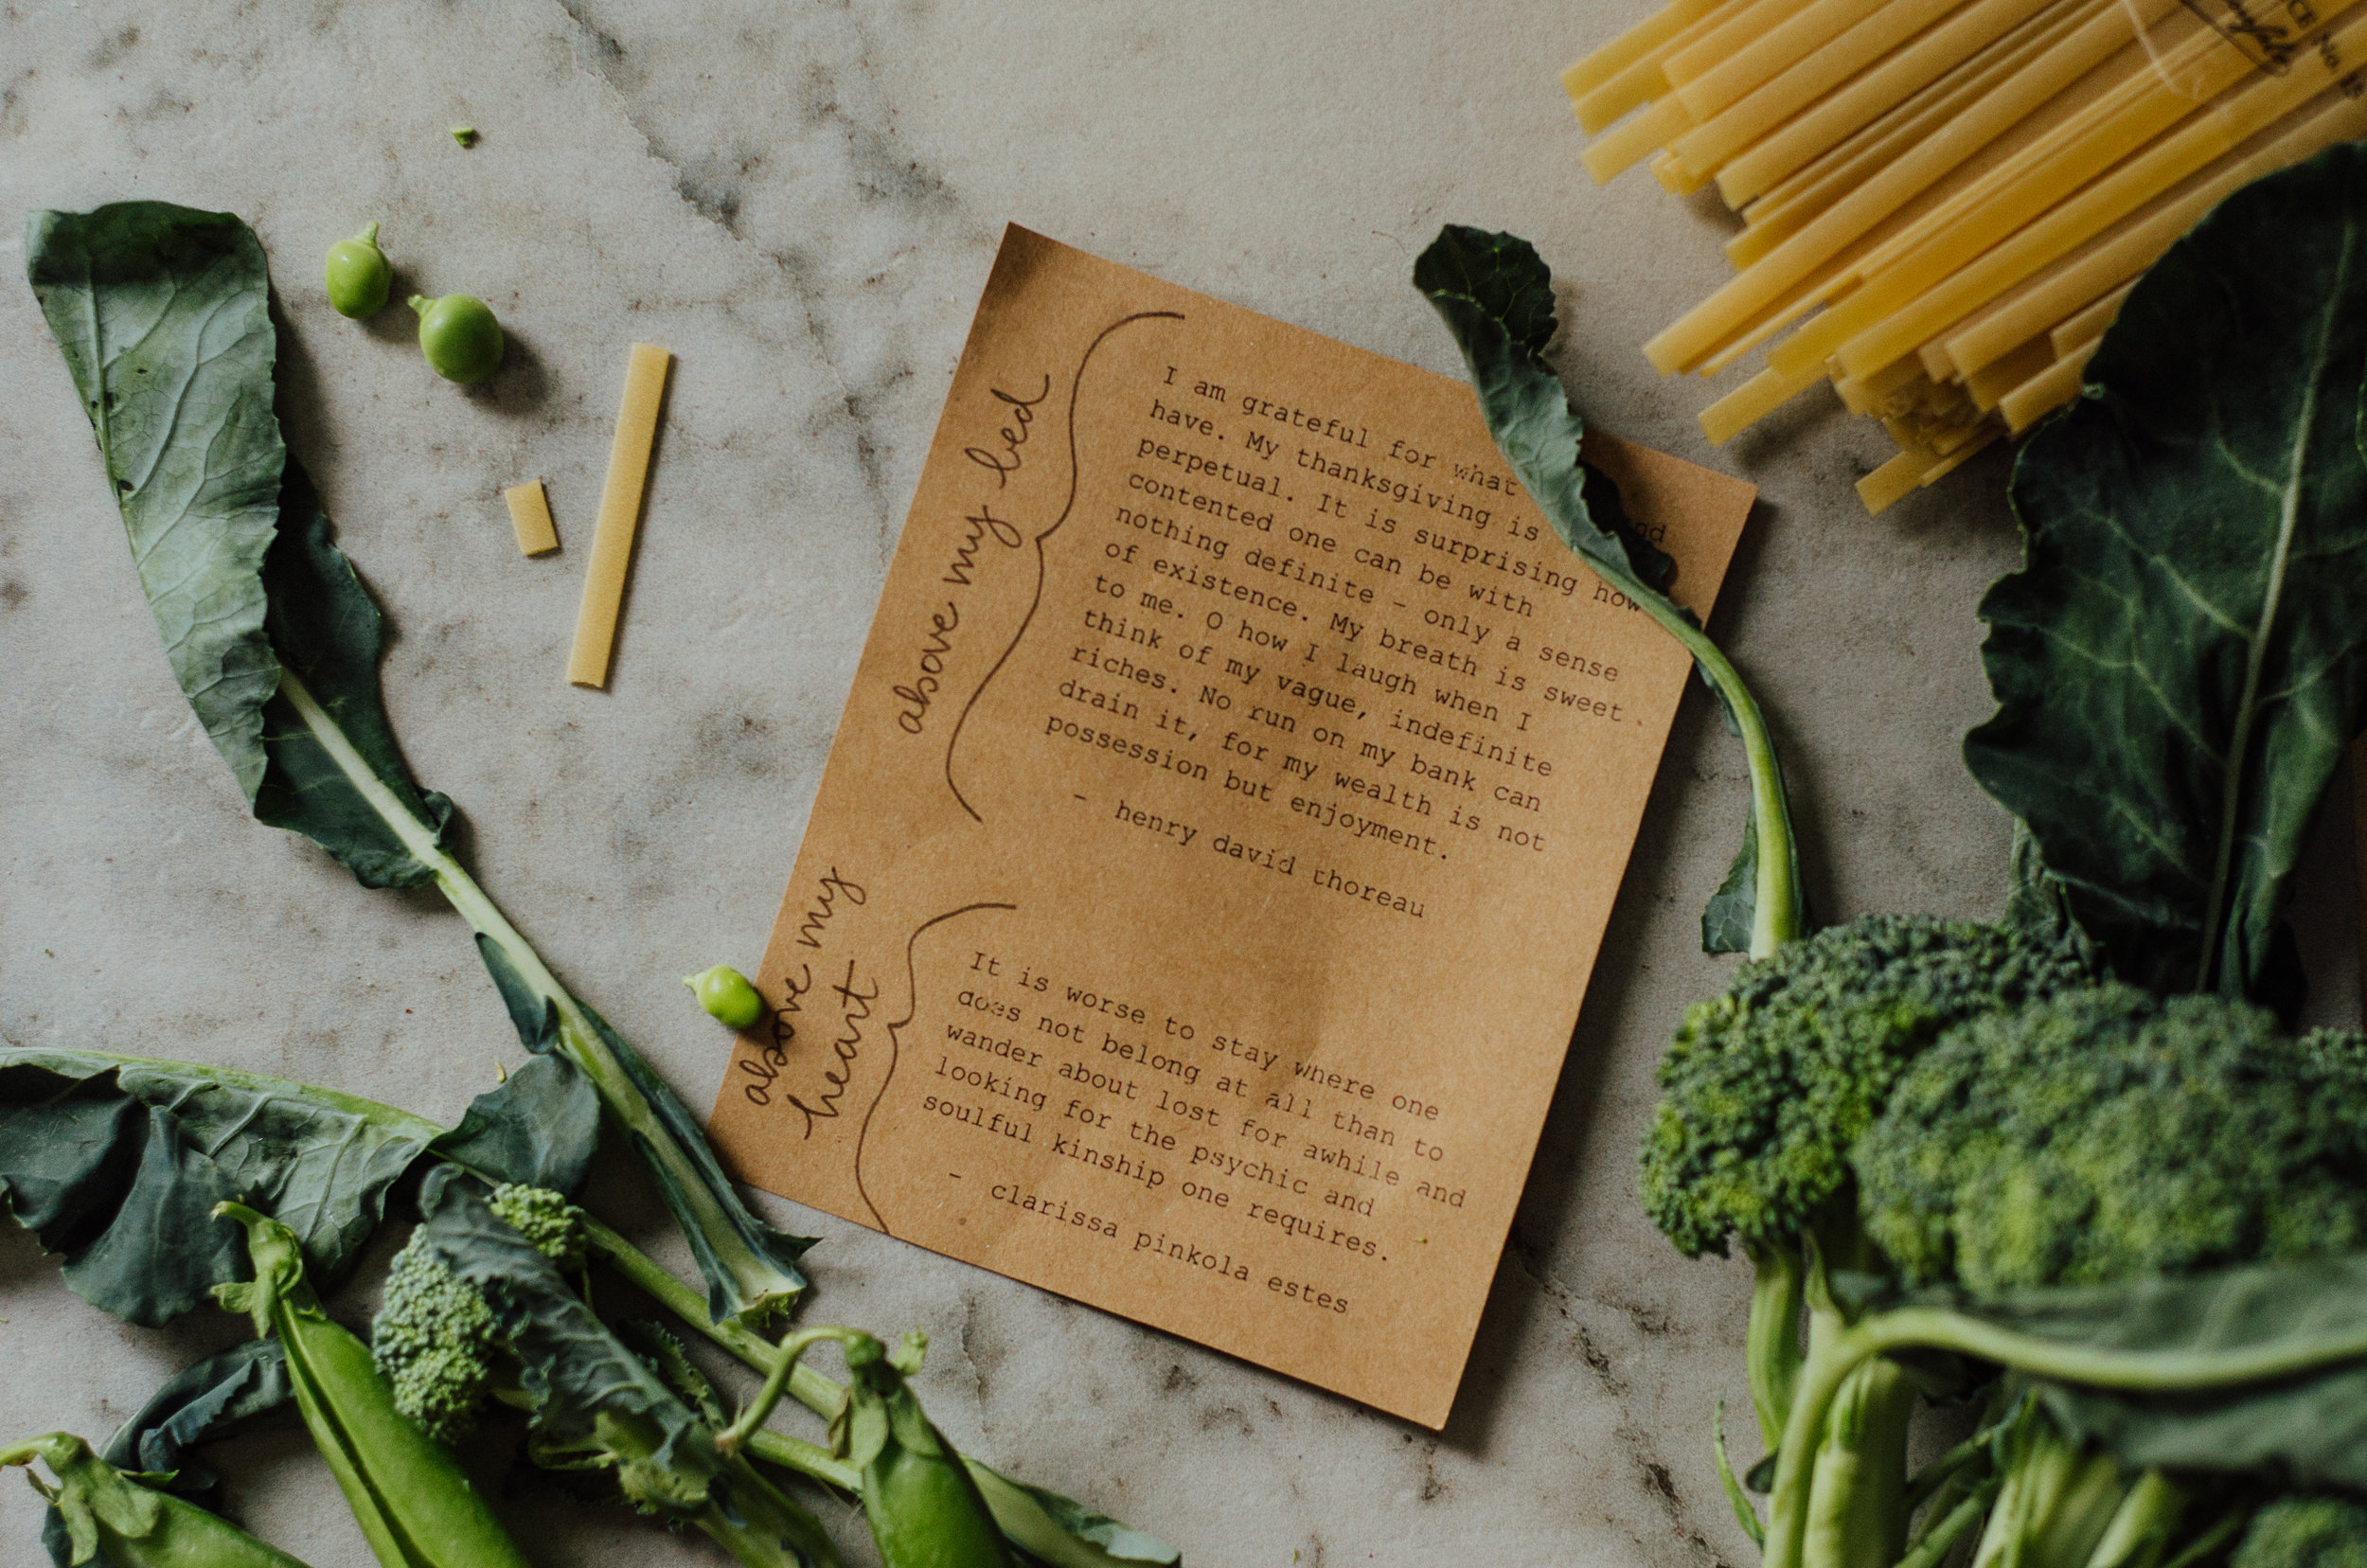 MEL × RIVERBEND: Fettuccine alfredo with broccoli and summer peas - the nomadic wife - riverbend gardens